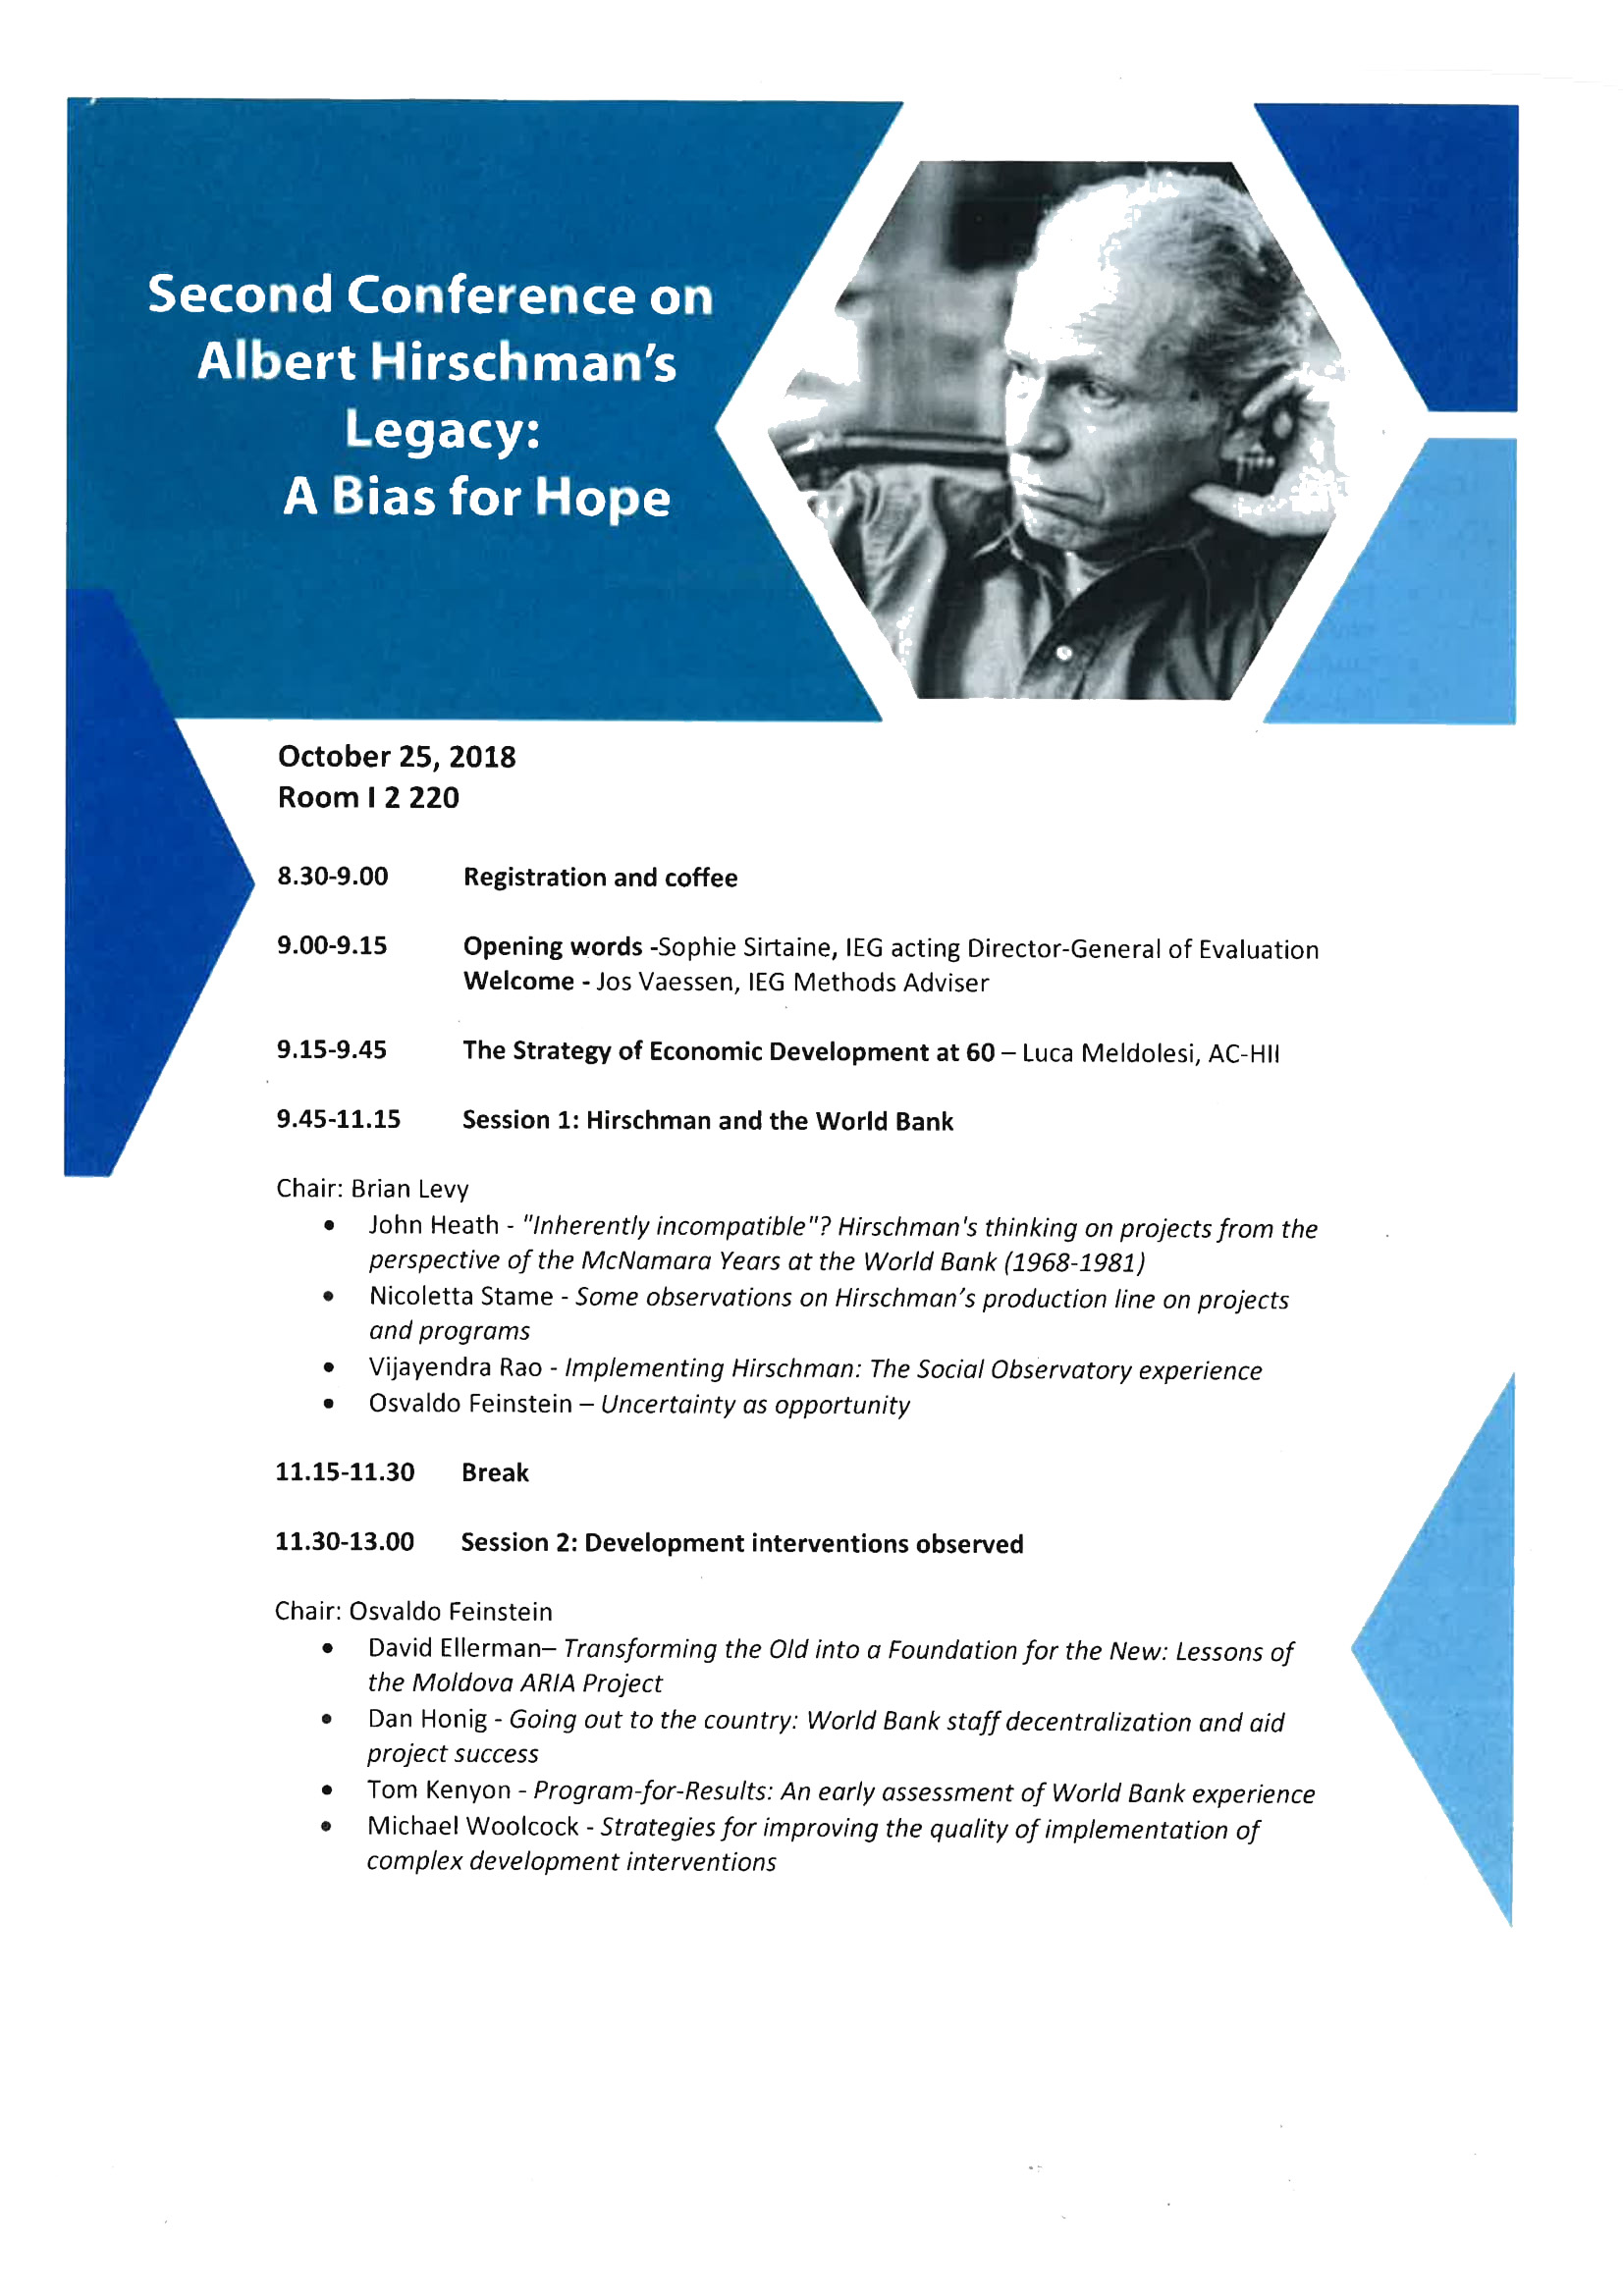 Second Conference on Hirschman's Legacy: A bias for hope